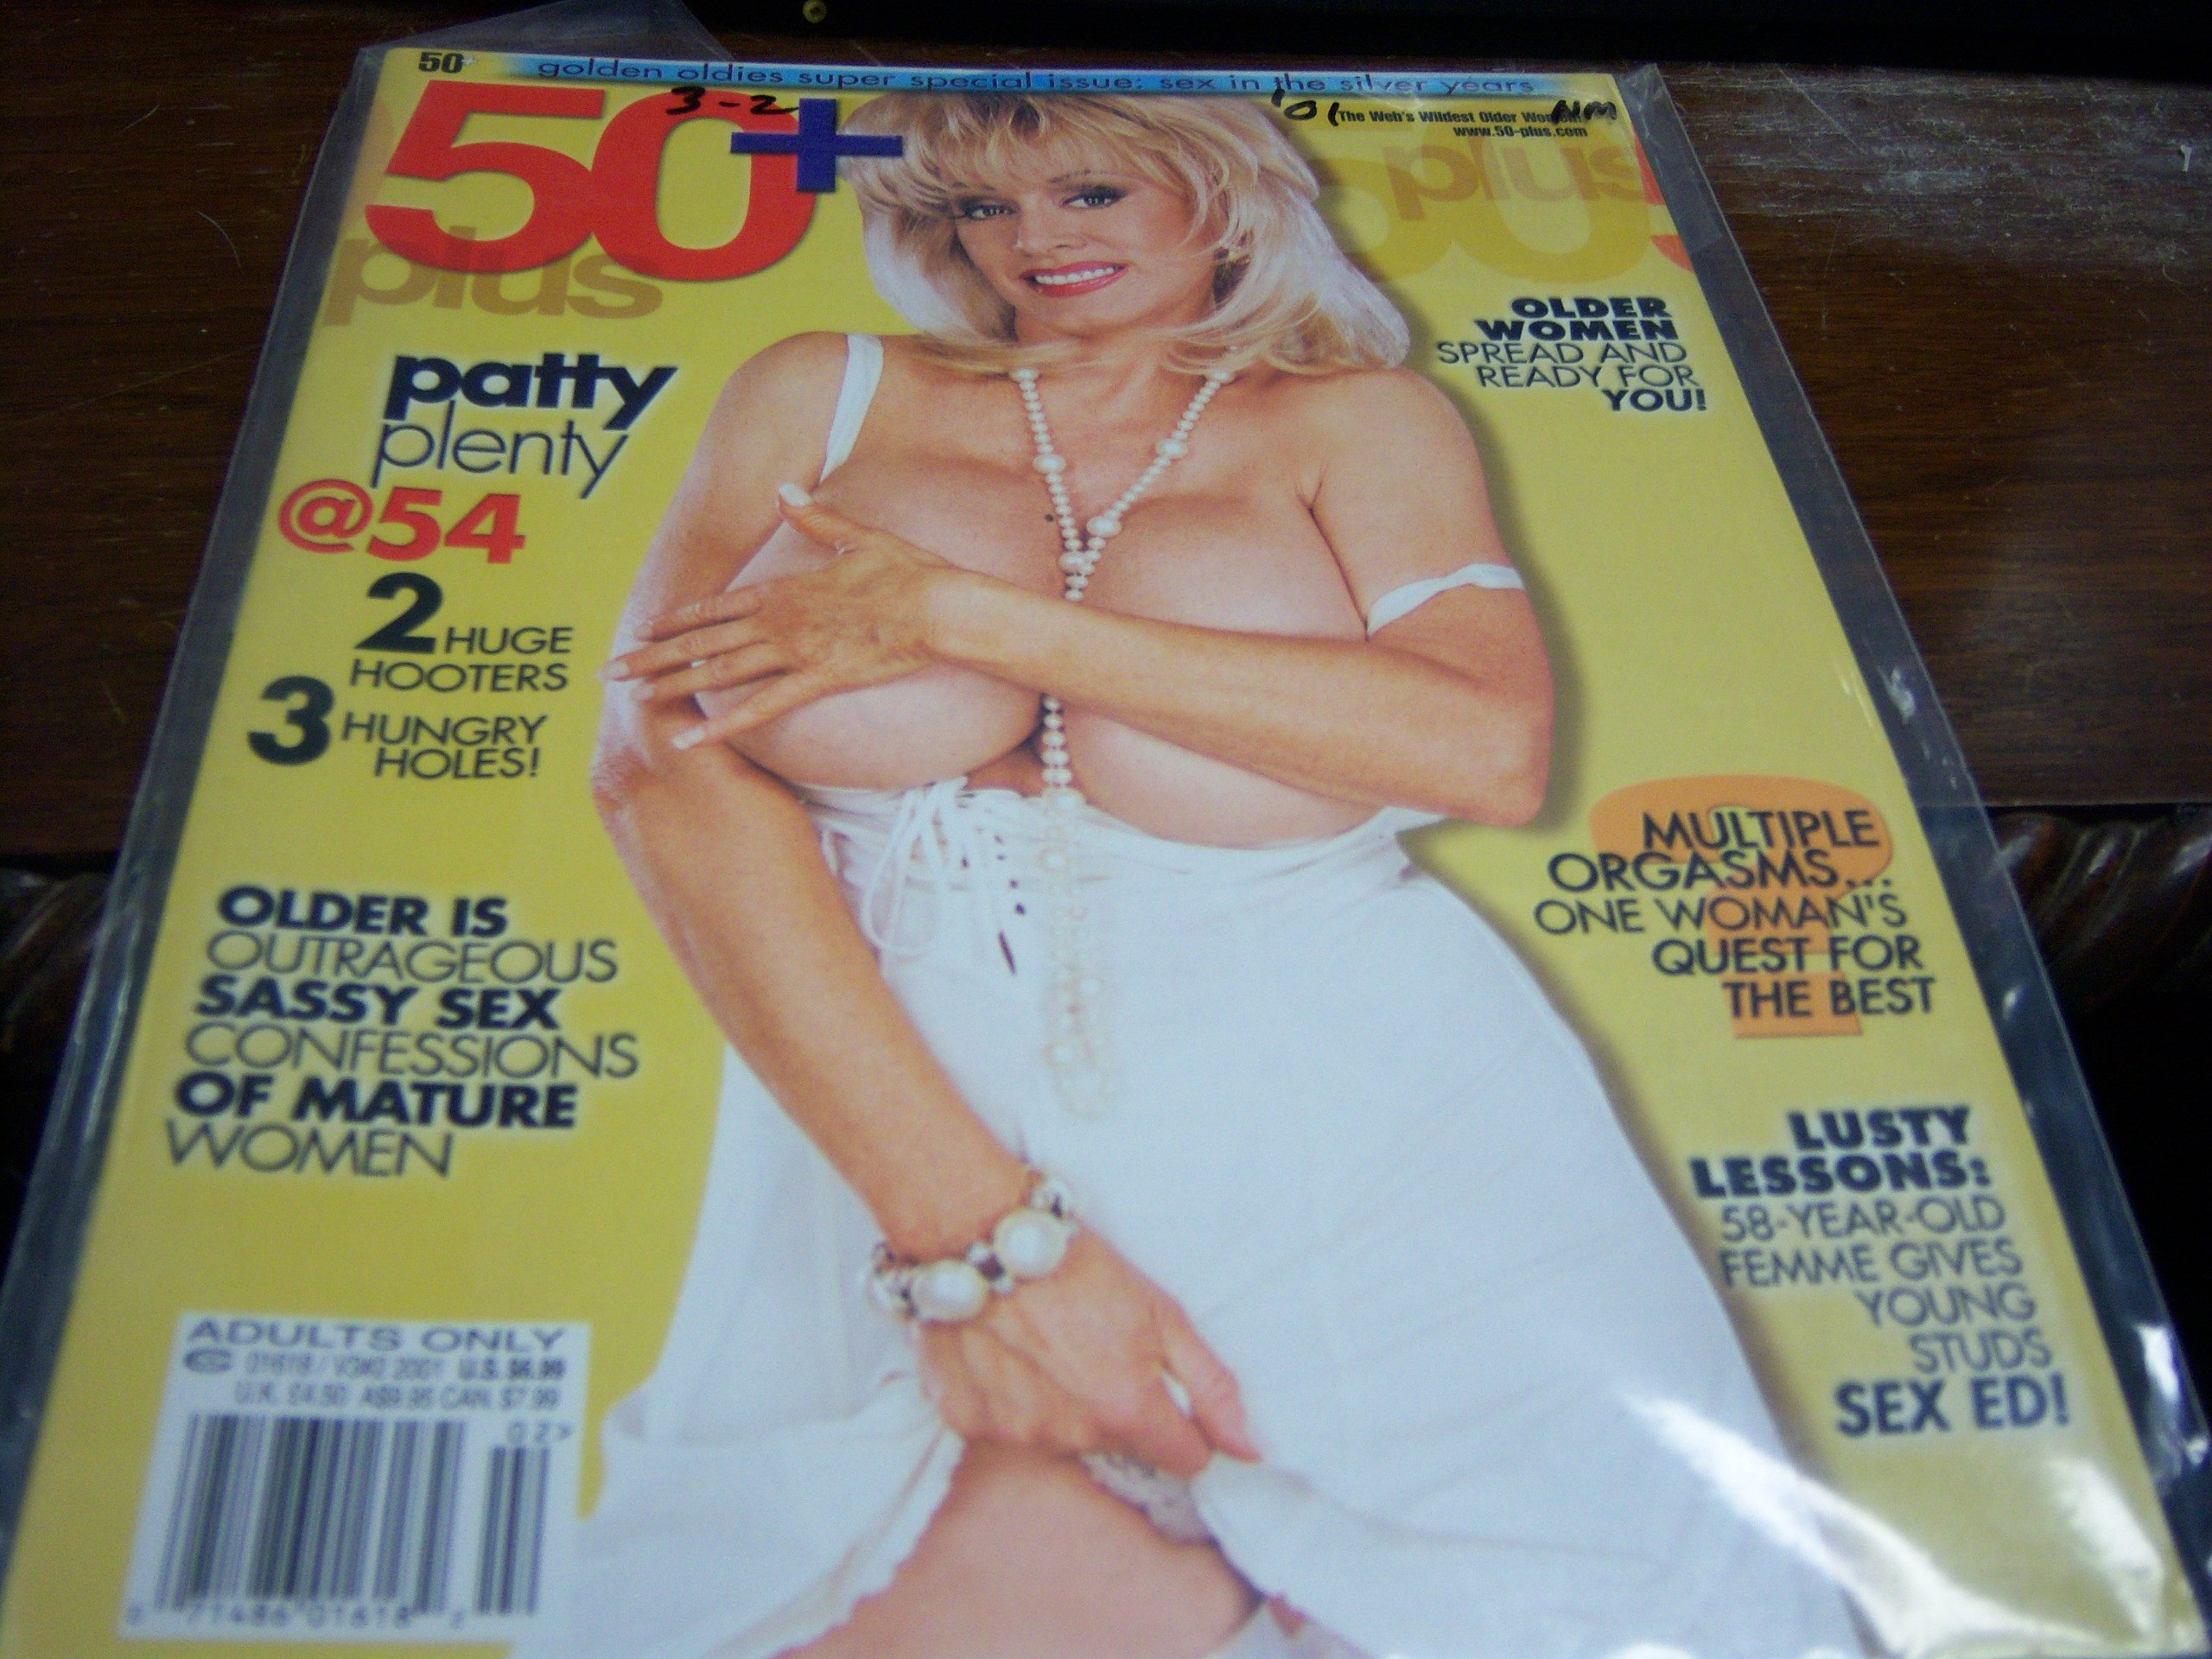 50 Adult Magazine V Patty Plenty At 54 Busty Cover 50 Plus Books Amazon Ca